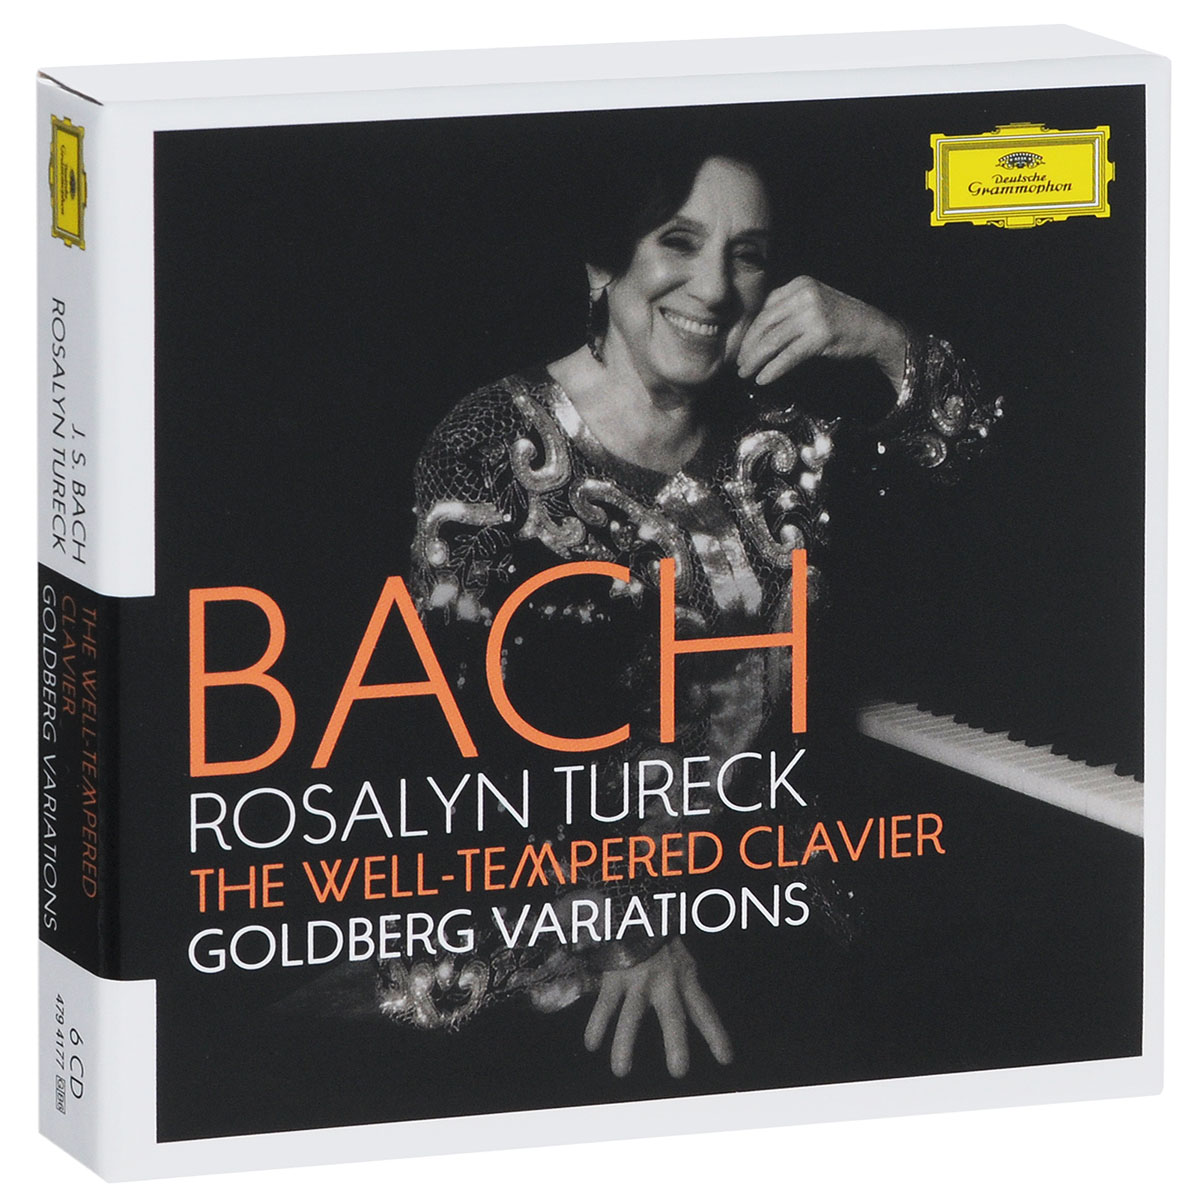 Розалин Тьюрек J. S. Bach / Rosalyn Tureck. The Well-Tempered Clavier / Goldberg Variations (6 CD) fuga короб прямоугольный 12х12х21 см 11 03 5 1 1 4 03 fuga